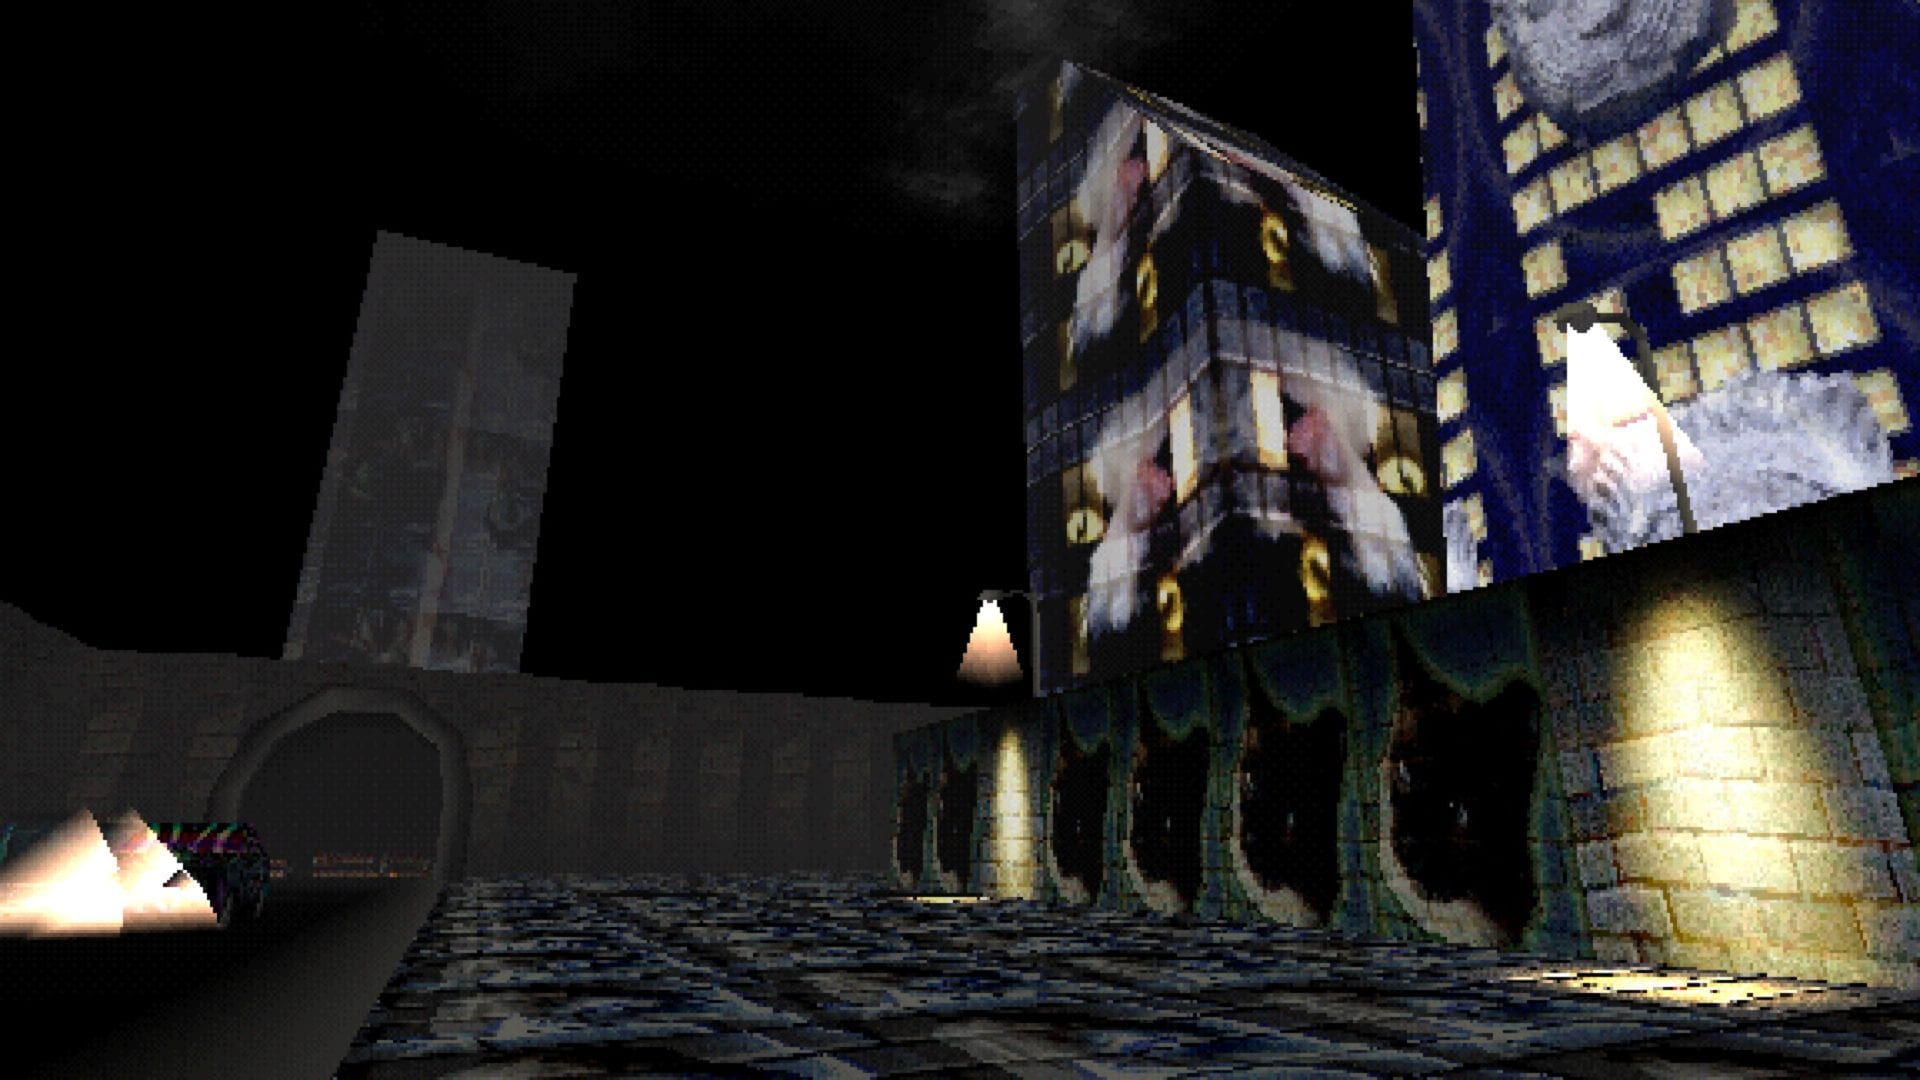 haunted ps1, demo, itch.io